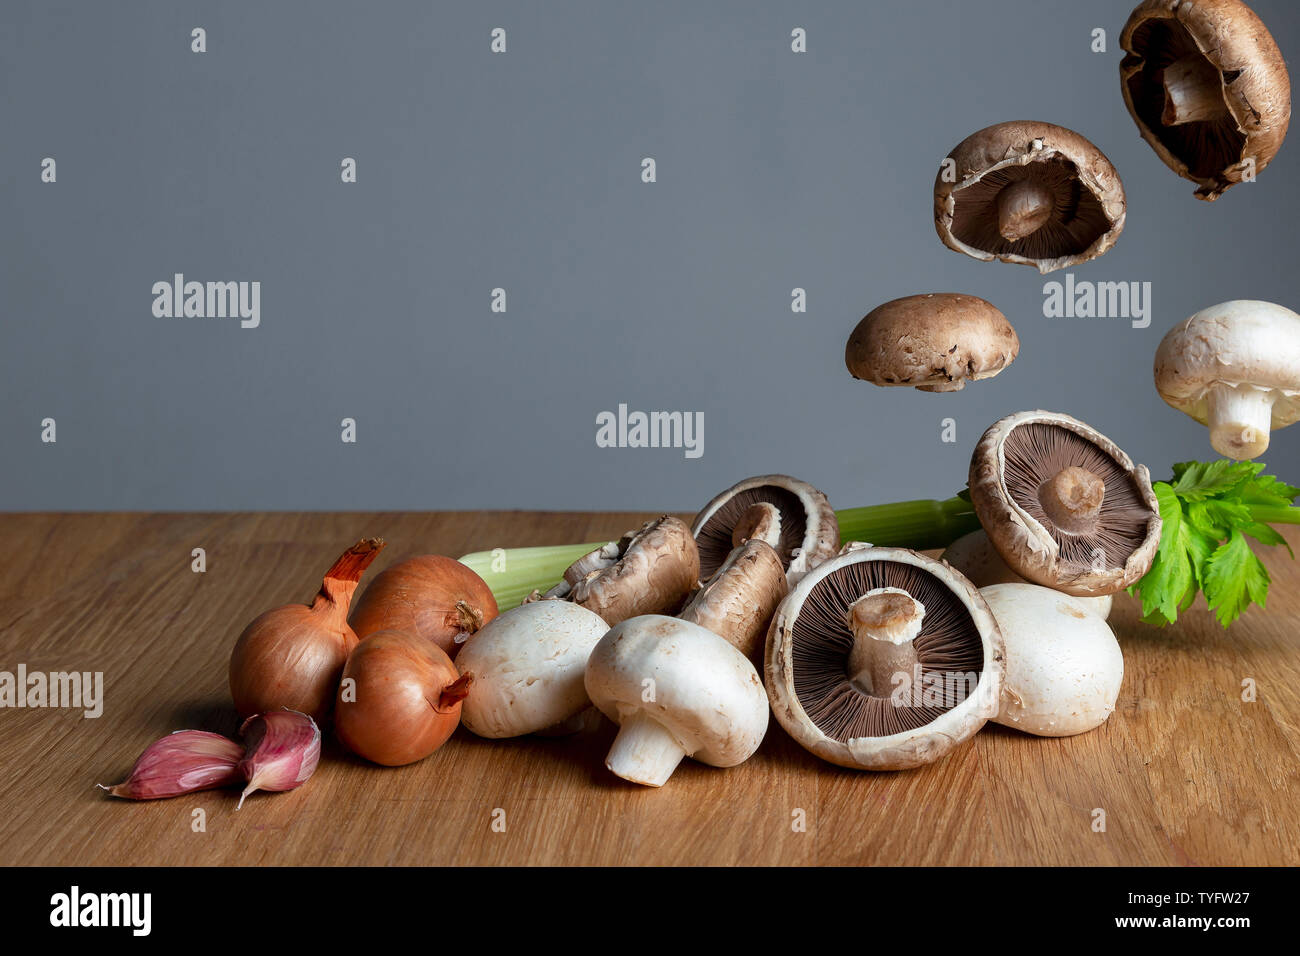 Ingredients for mushroom soup Stock Photo